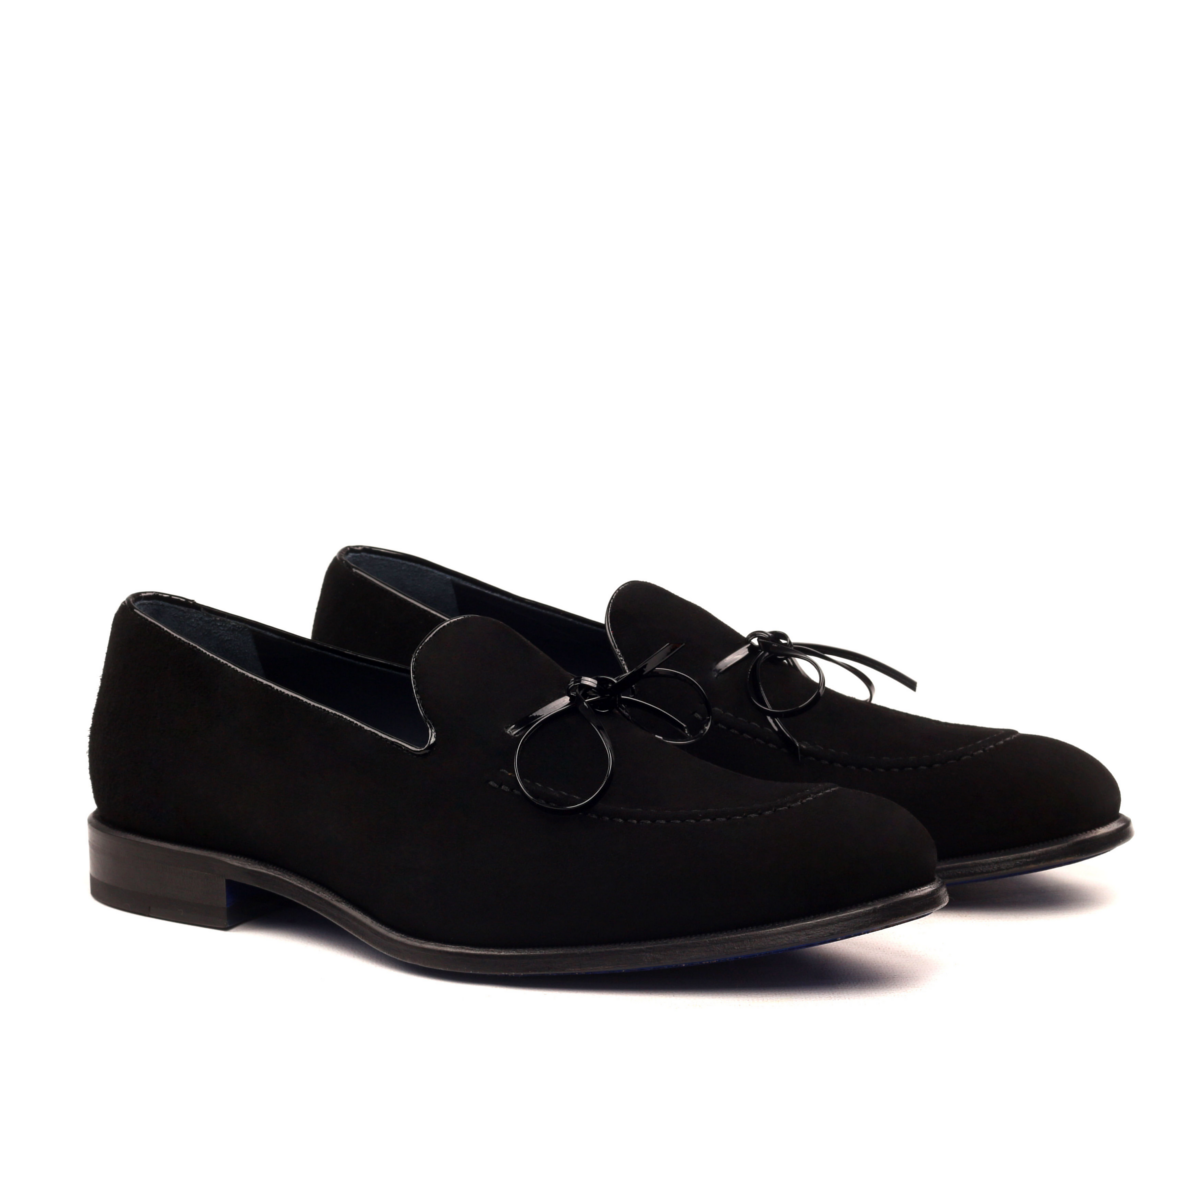 Loafer in black patent leather